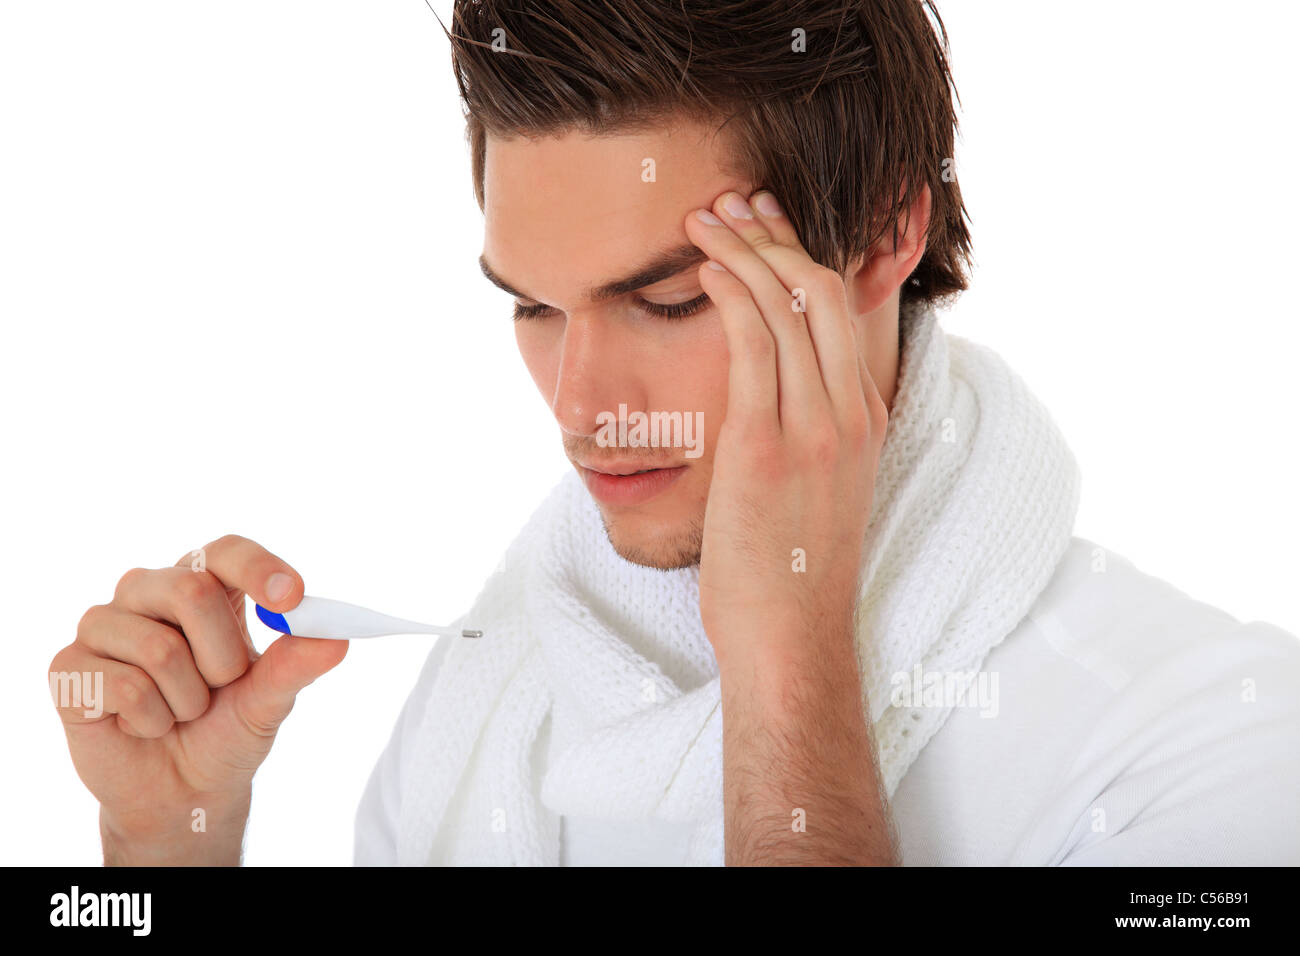 Attractive young man feels unwell. All on white background. - Stock Image